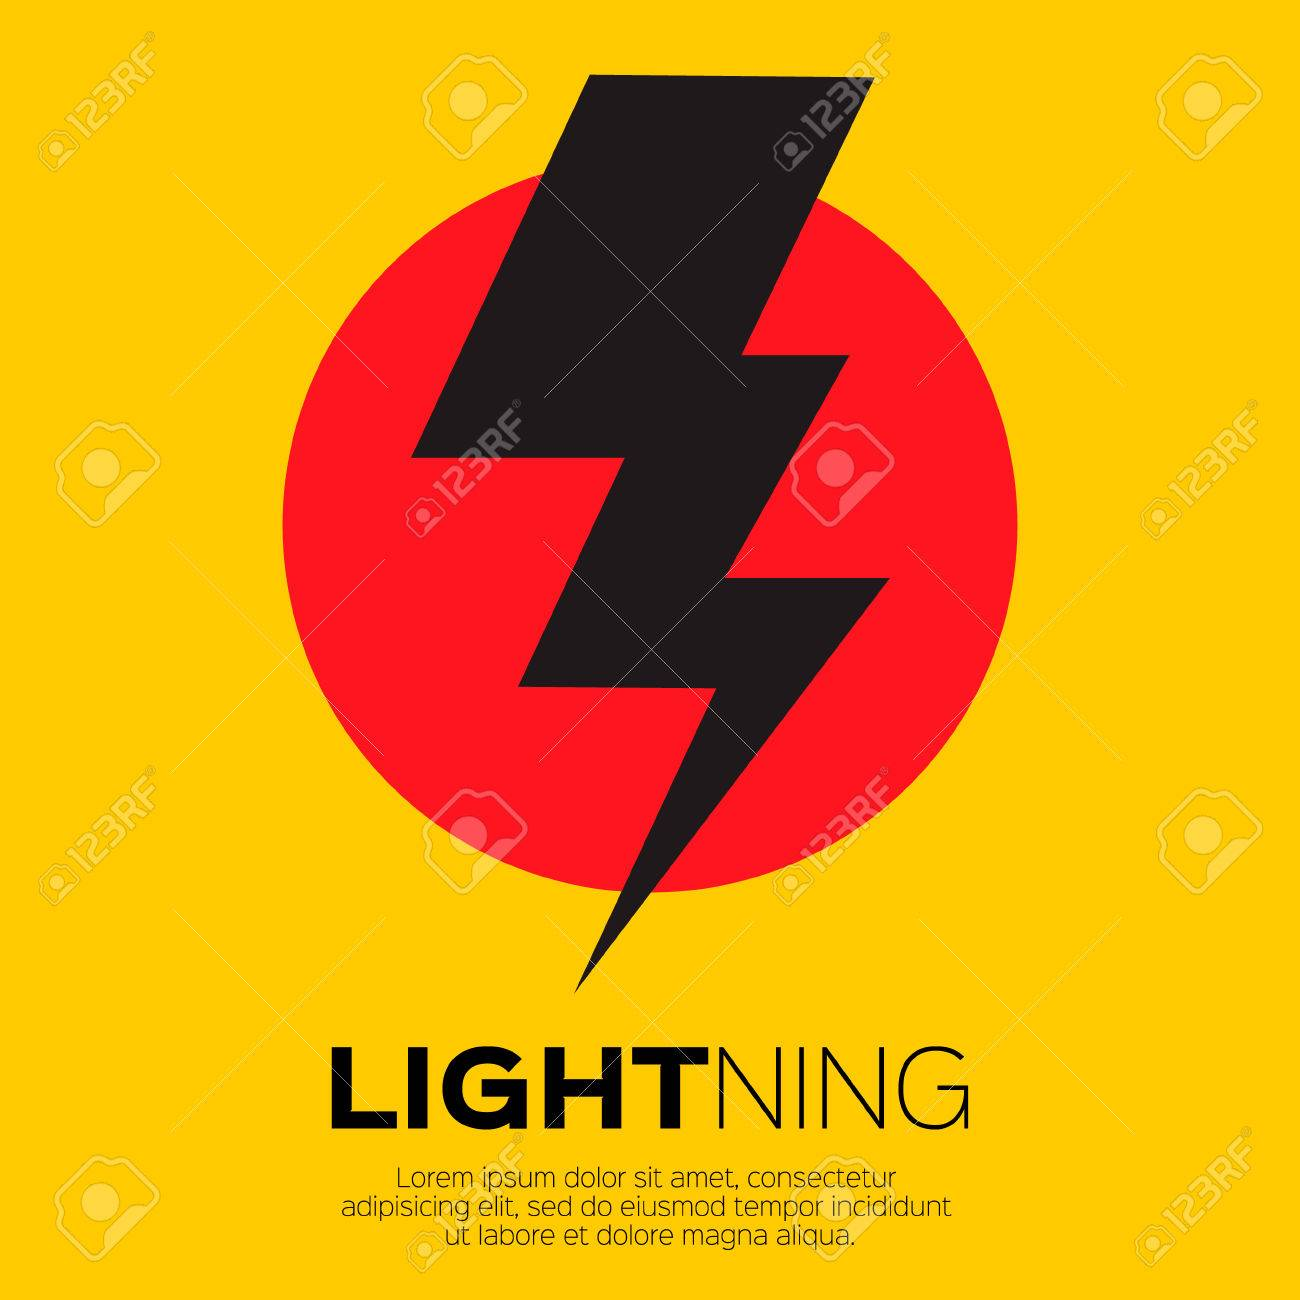 Lightning bolt icon for apps and websites - 47219758